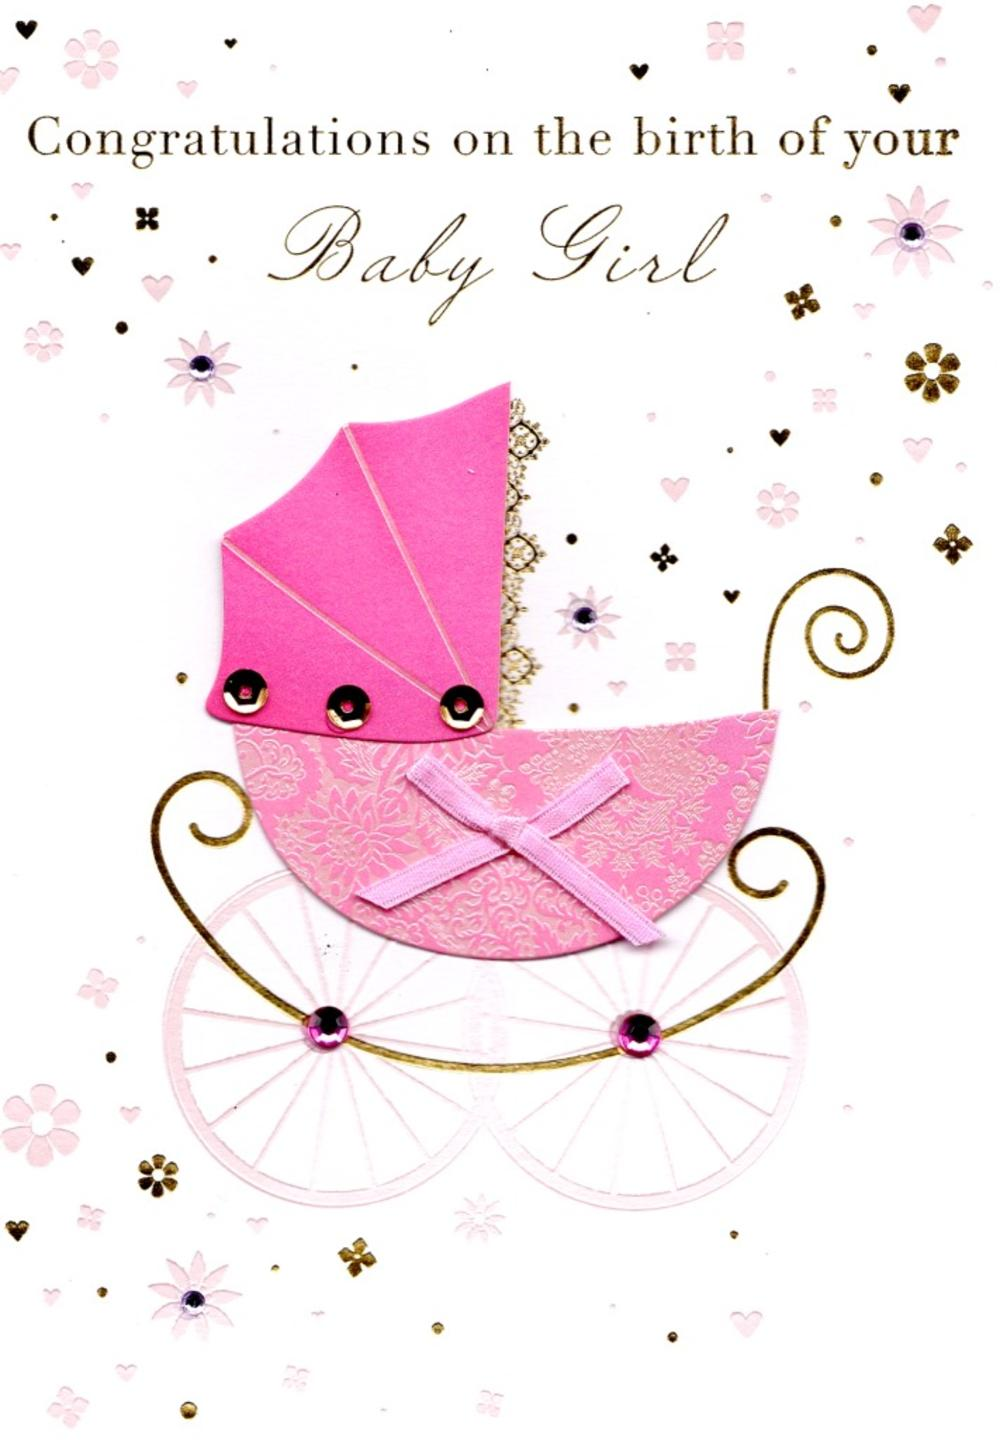 Congratulation card for baby girl yolarnetonic congratulations birth new baby girl greeting card cards love kates m4hsunfo